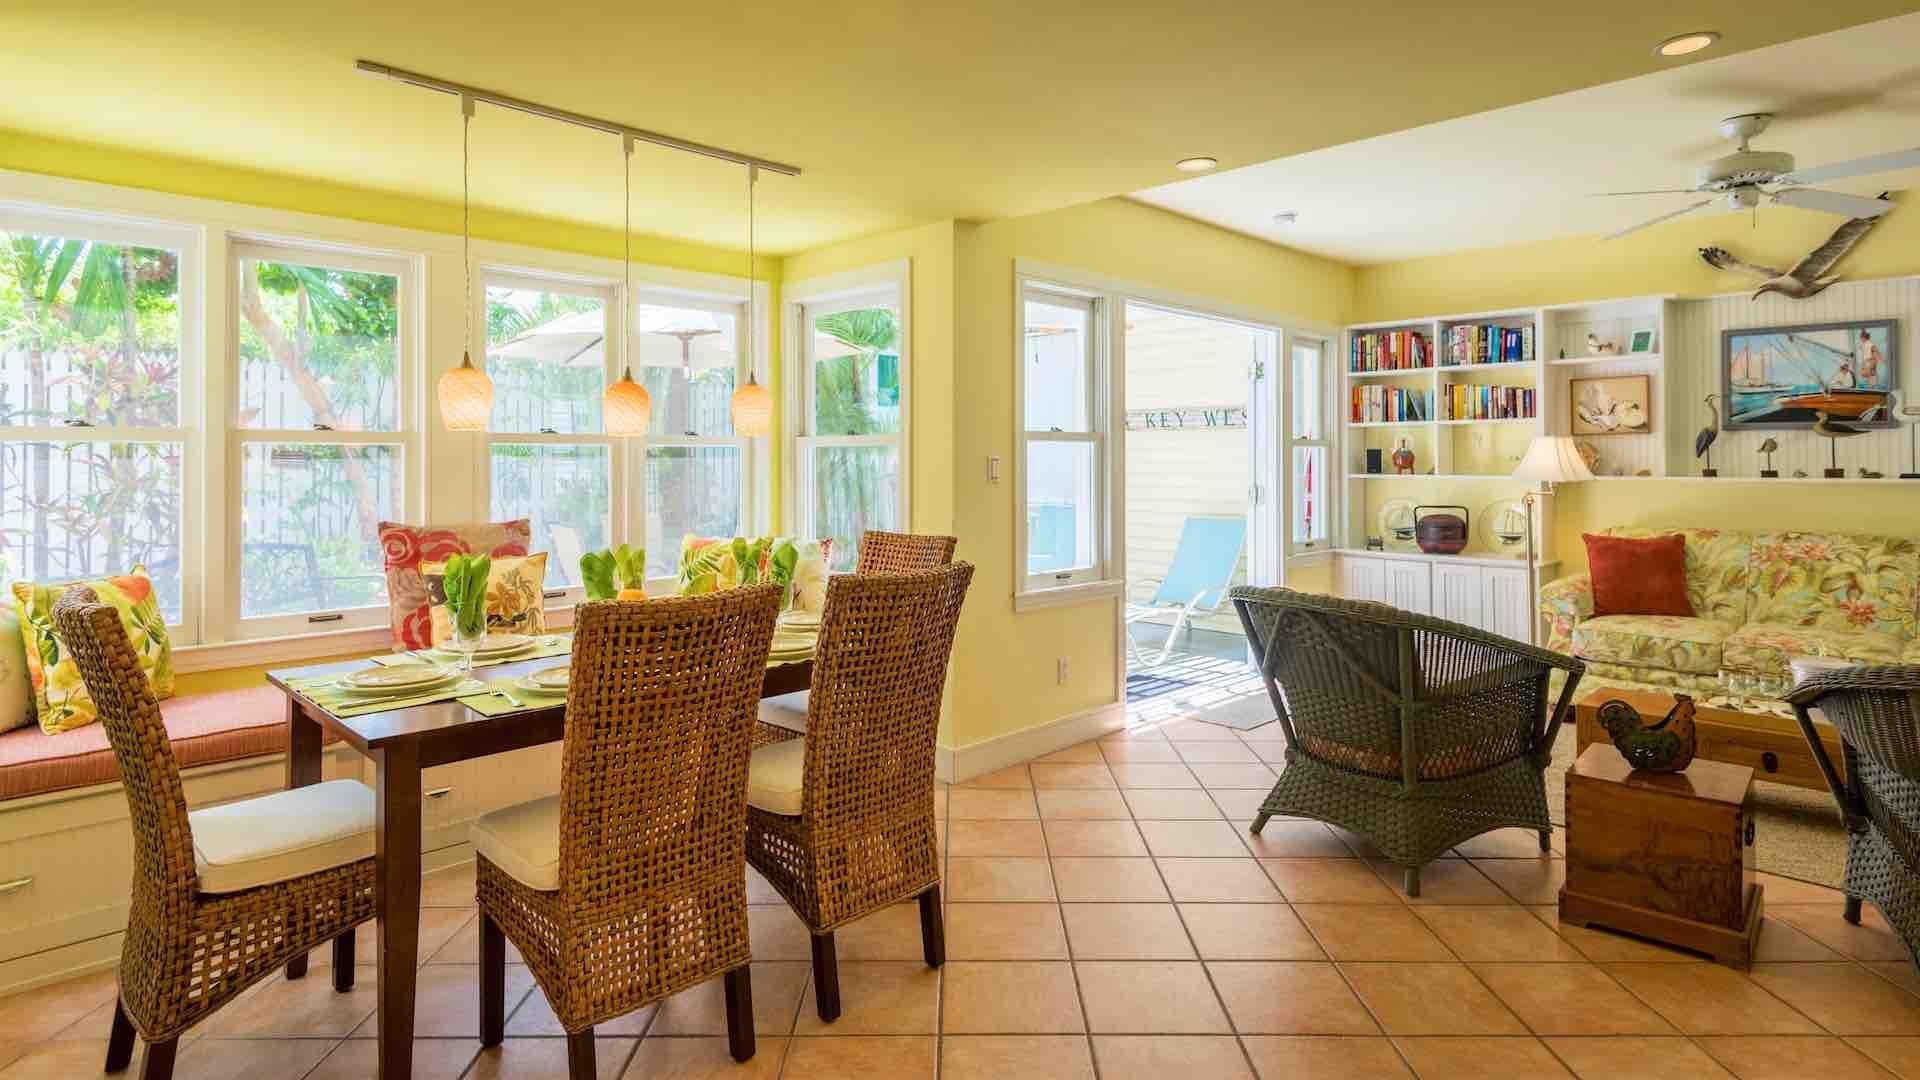 The dining table is situated in the bay window, with seating for six...